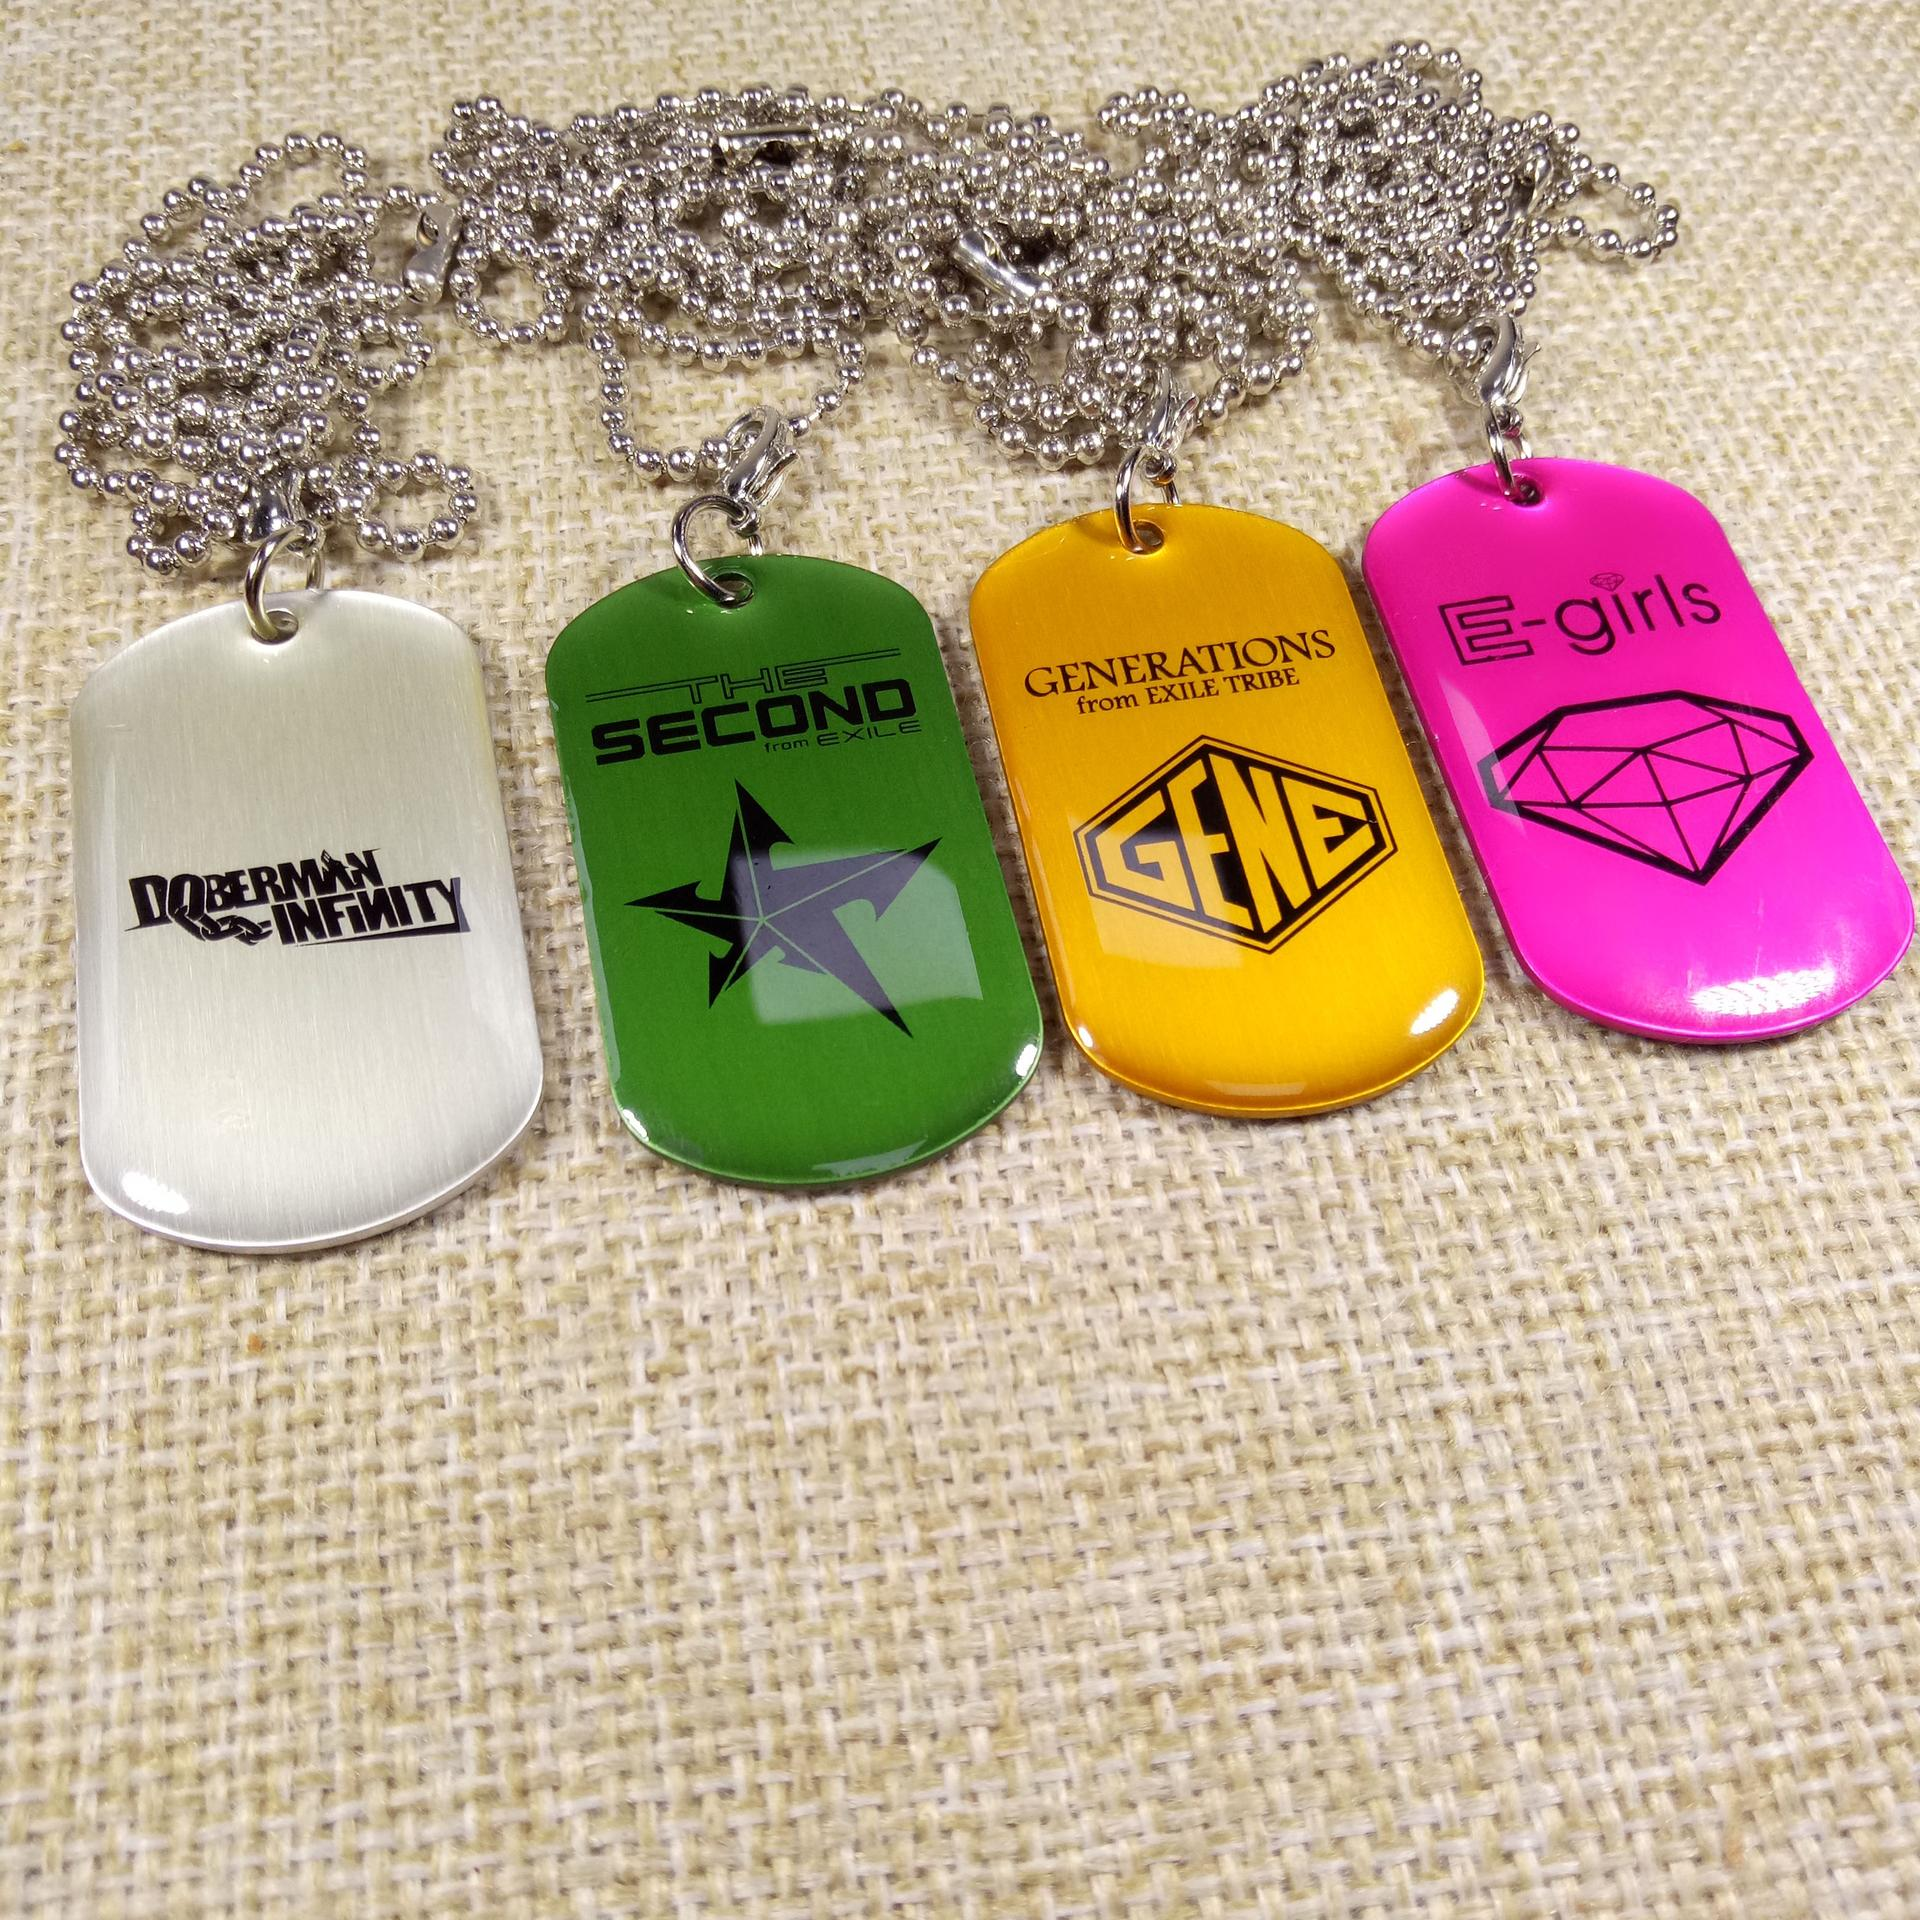 Europe style fashion cheap customized printed sexy girl dog tags